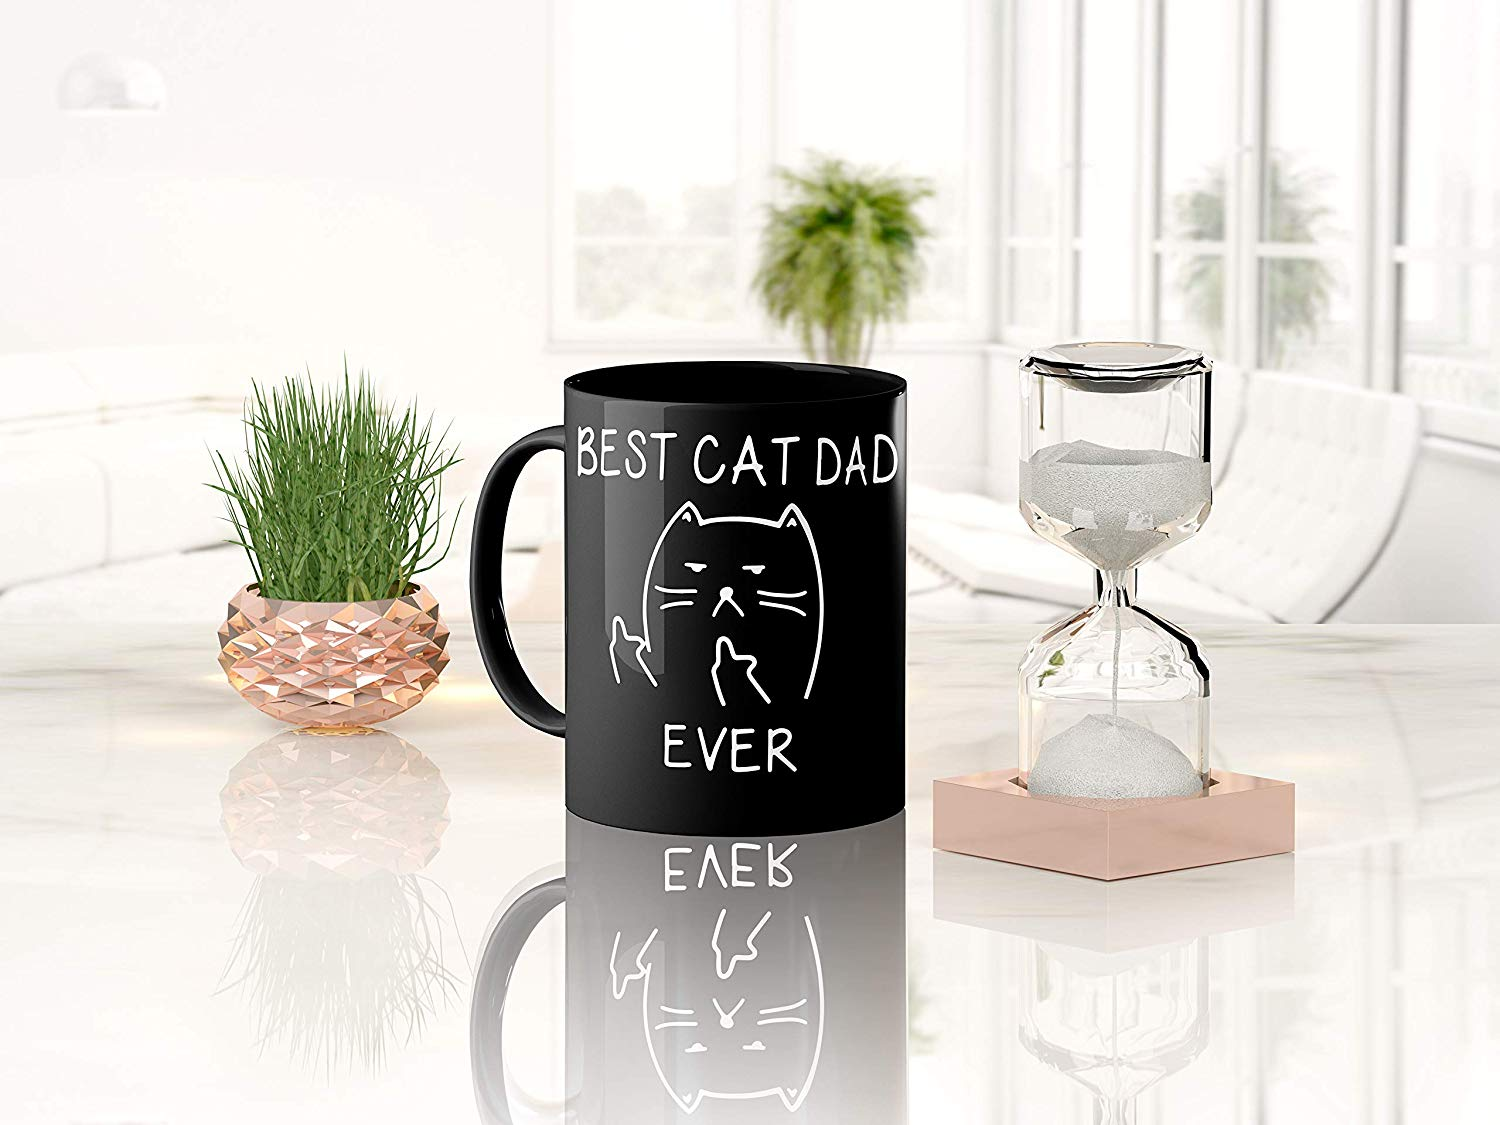 Best Cat Dad Ever Funny Lover Gifts Middle Finger Black Coffee Mug Unique Birthday Gift For